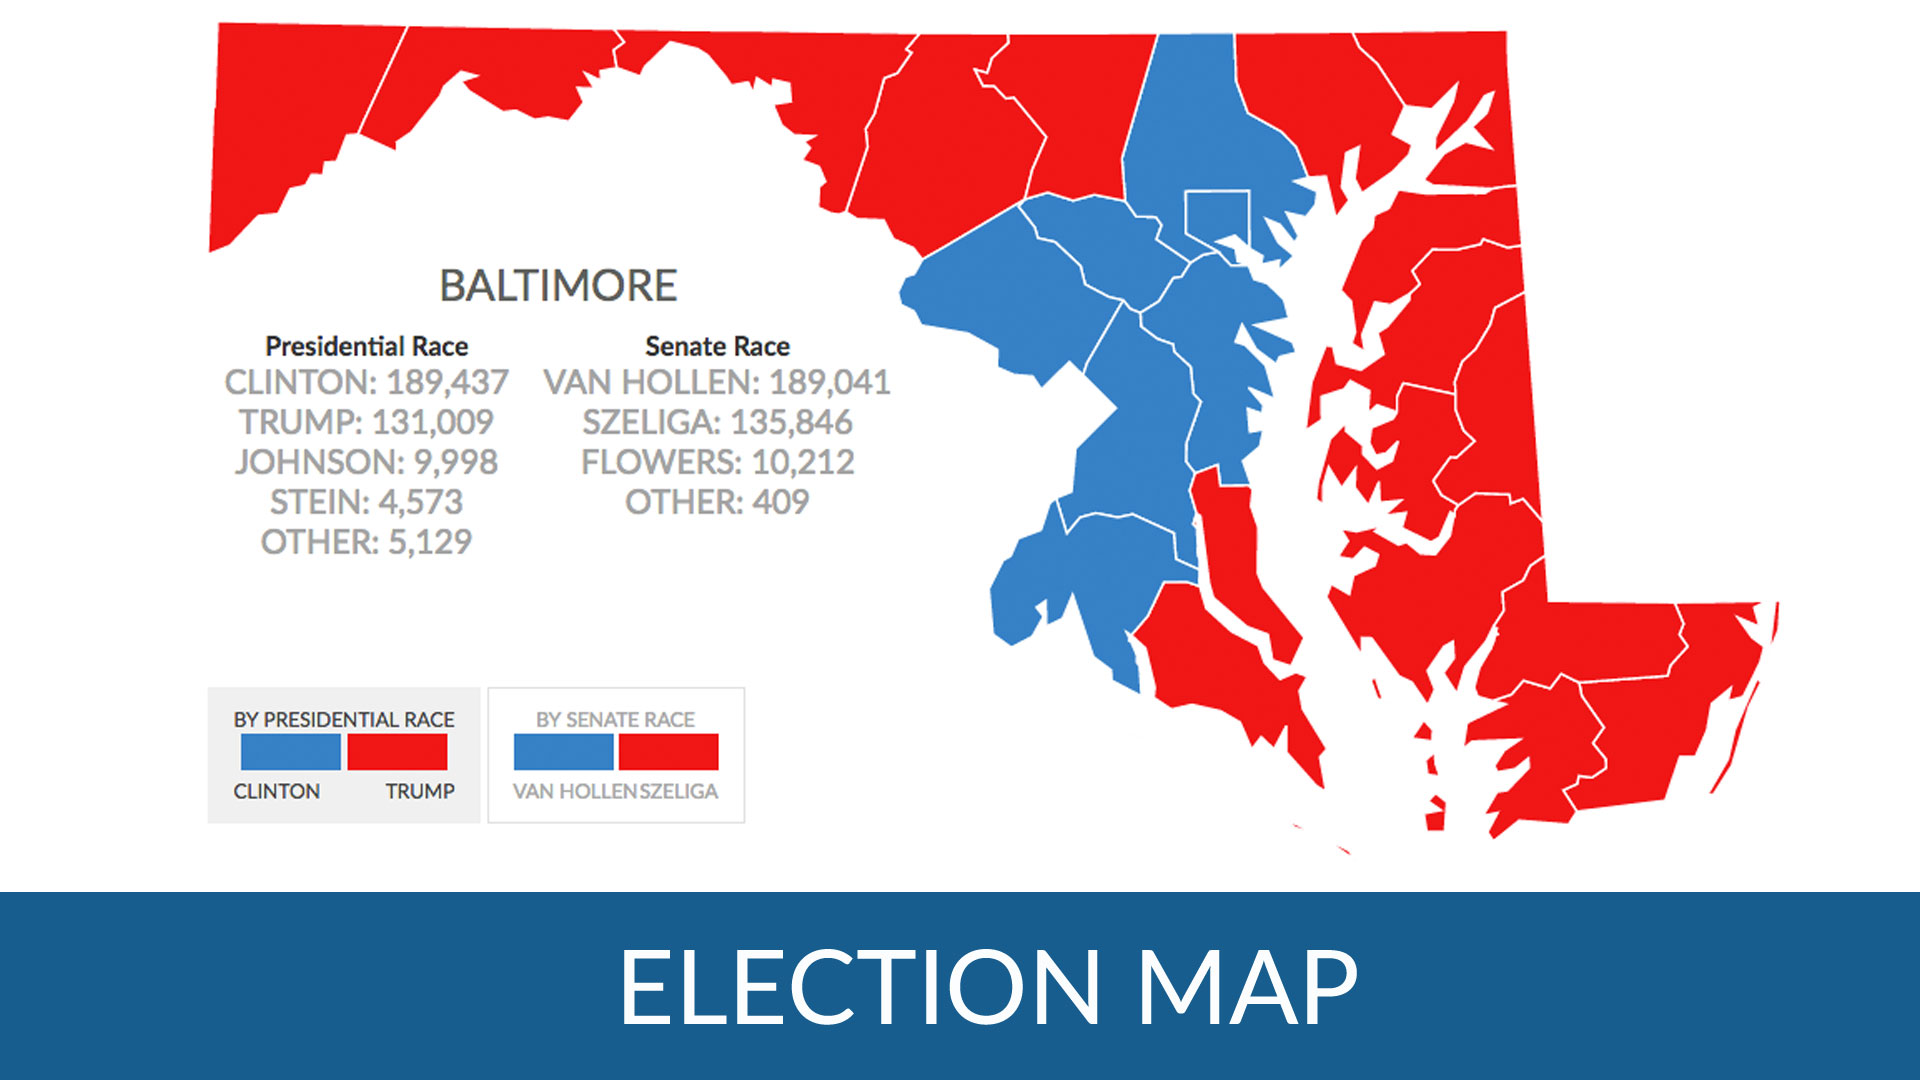 How did Maryland counties vote in the 2016 Presidential election